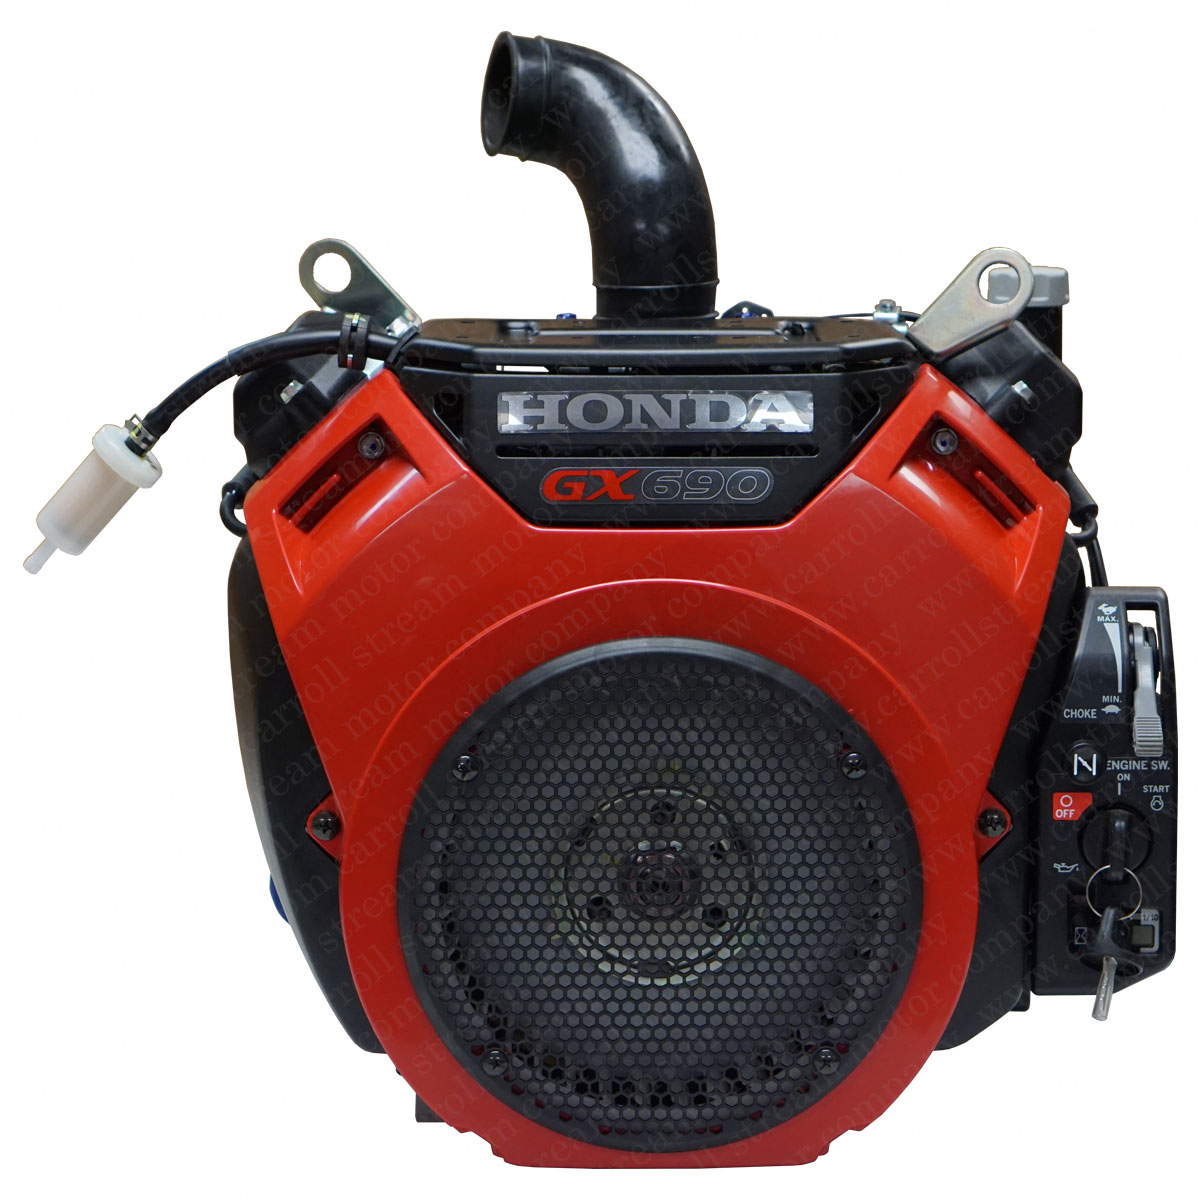 Honda GX690RH-TXF2 Gas Engine Electric start 1 1/8